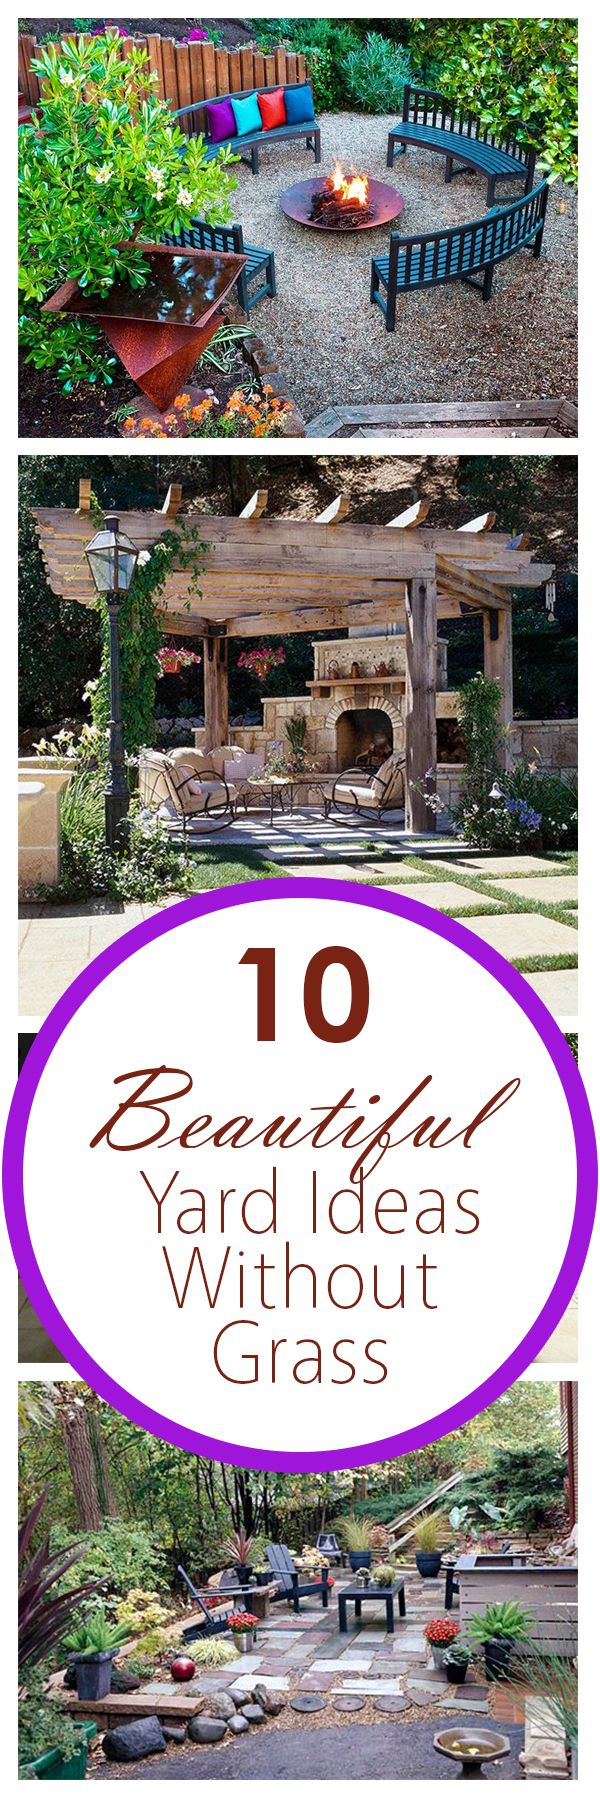 Xeriscape, landscaping without grass, popular pin, outdoor living, landscape ideas, gardening, outdoor gardening.